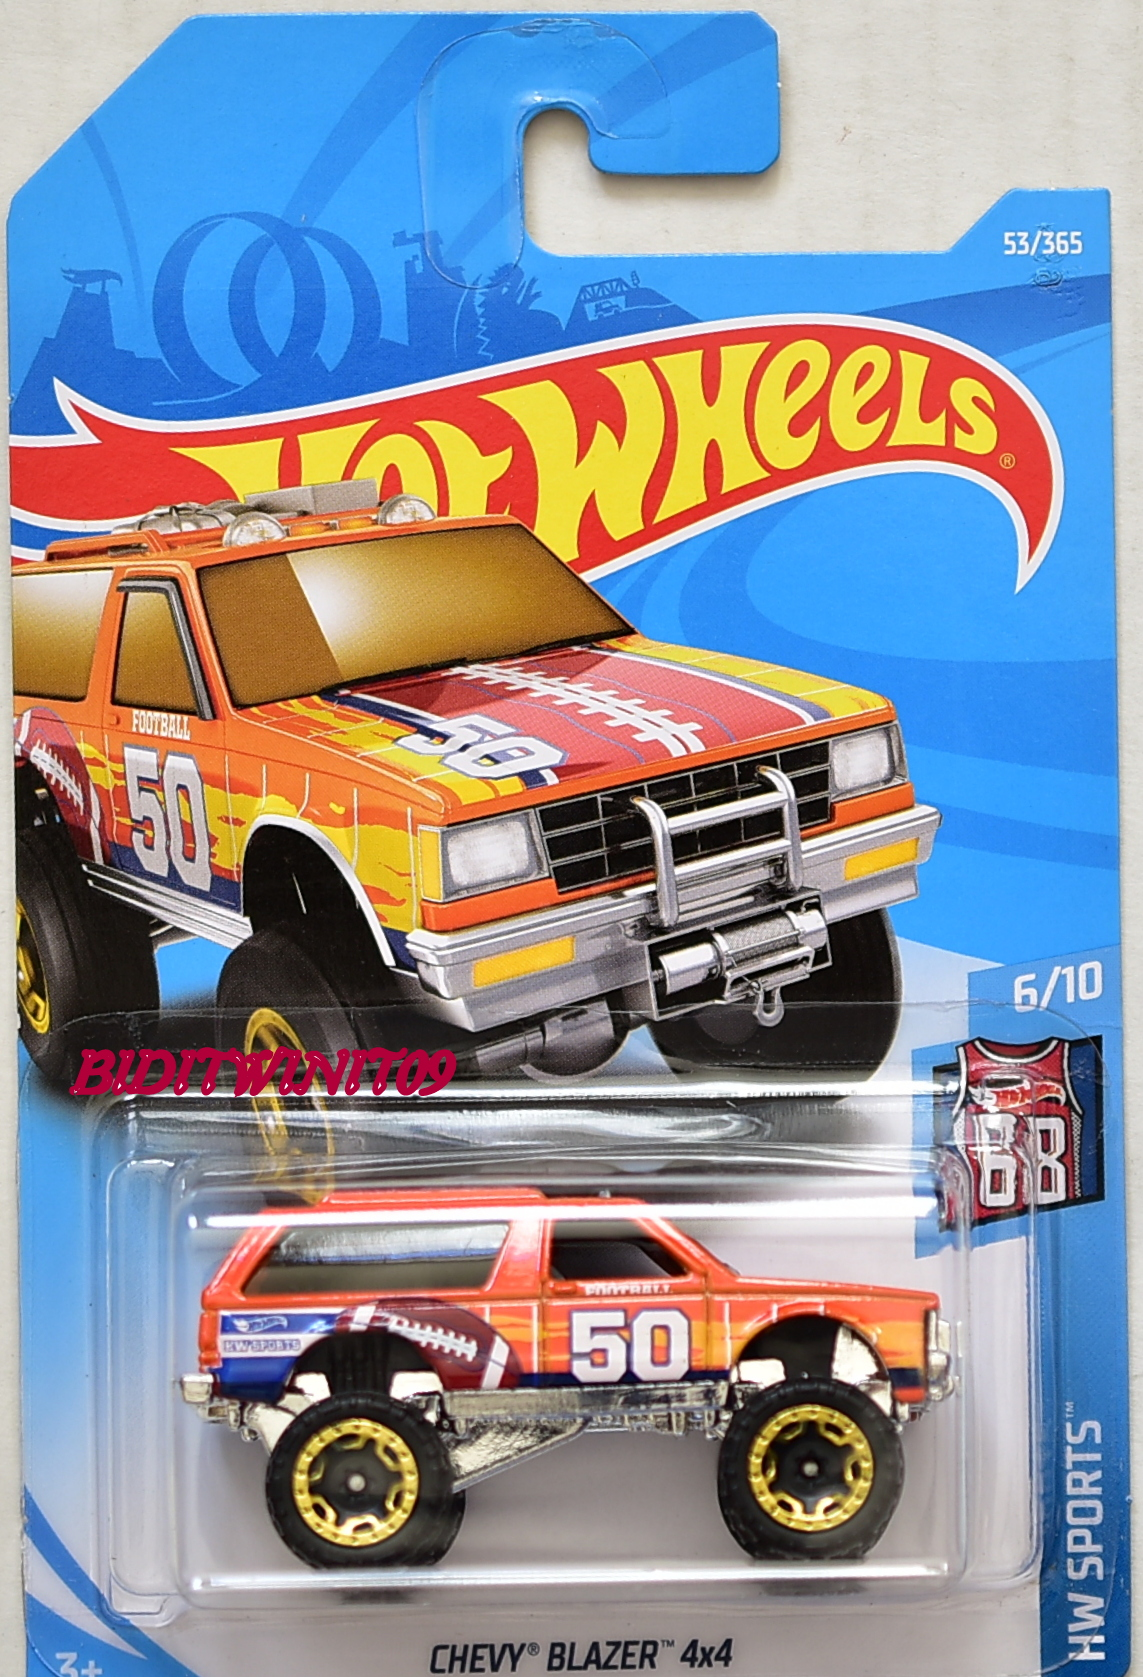 HOT WHEELS 2018 HW SPORTS CHEVY BLAZER 4X4 #6/10